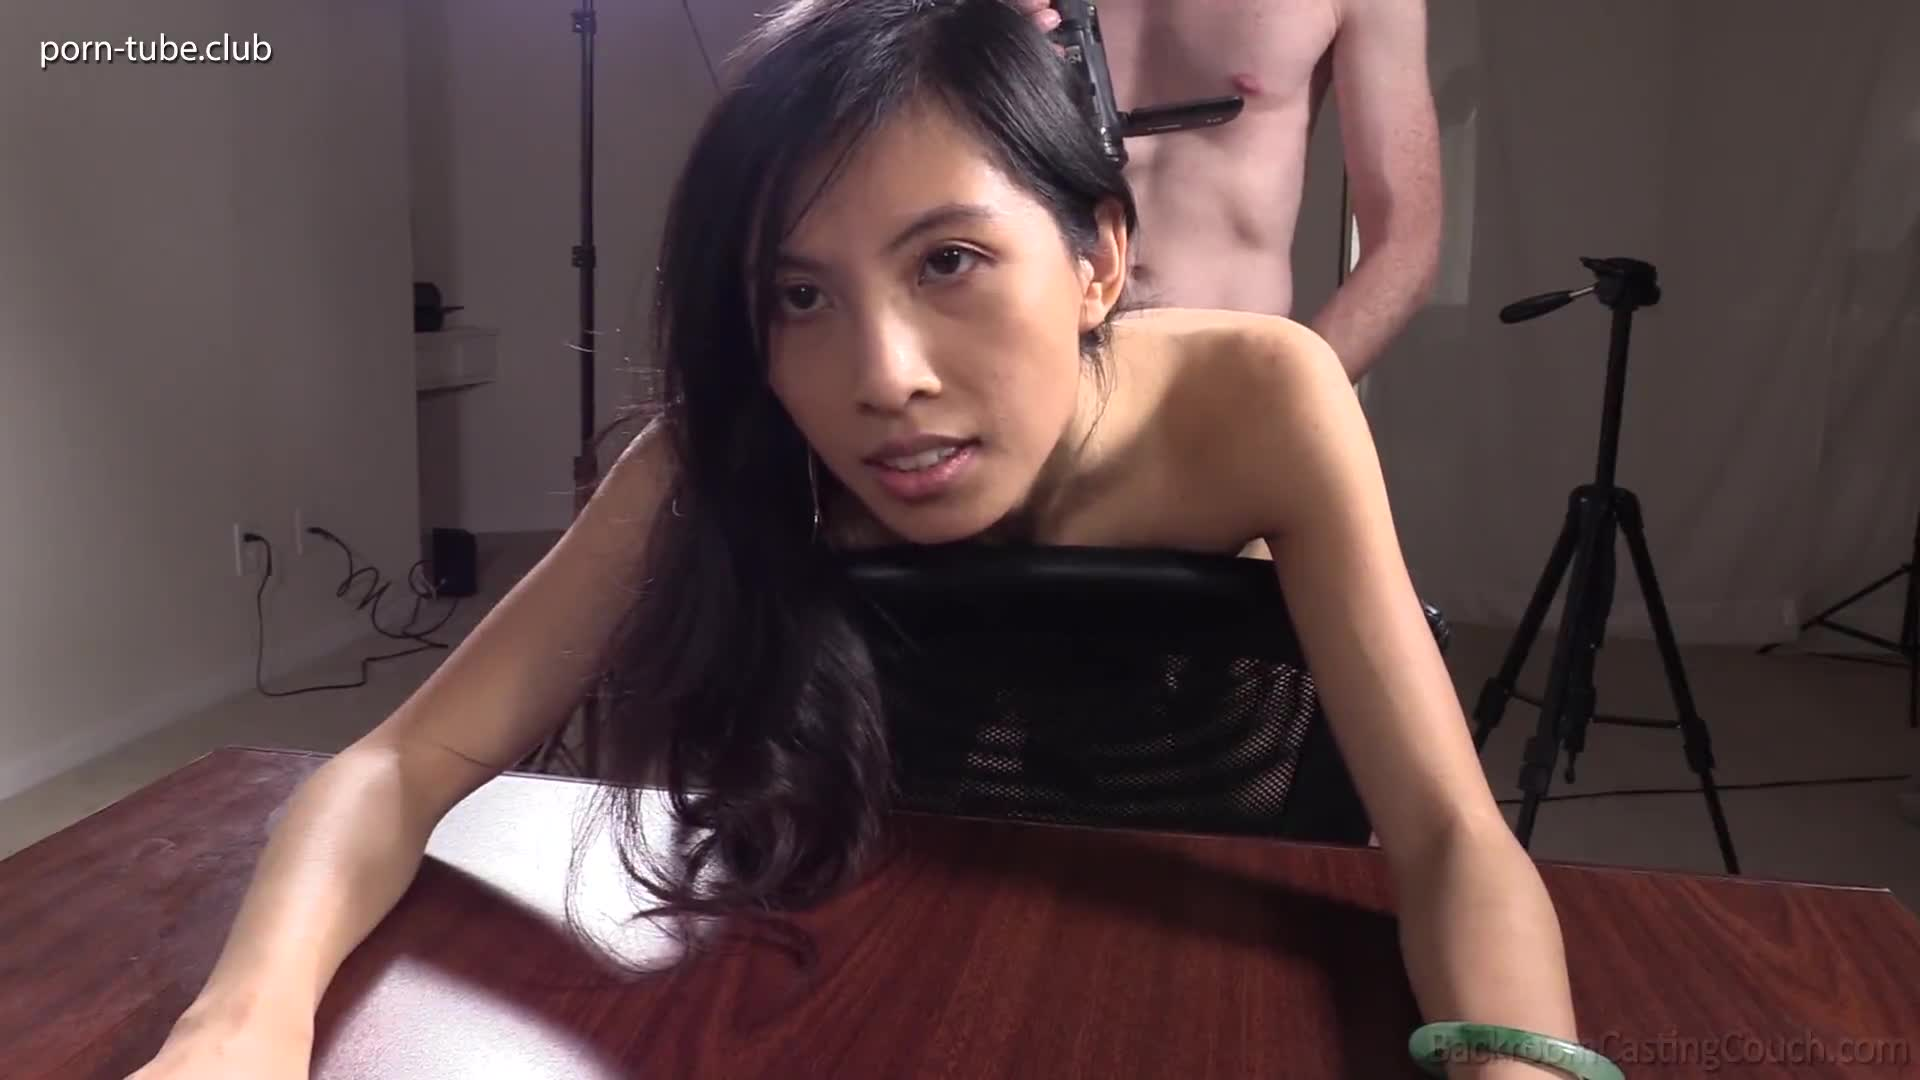 BackroomCastingCouch 20.11.16 Asian Anal Yumi 25 Years Old